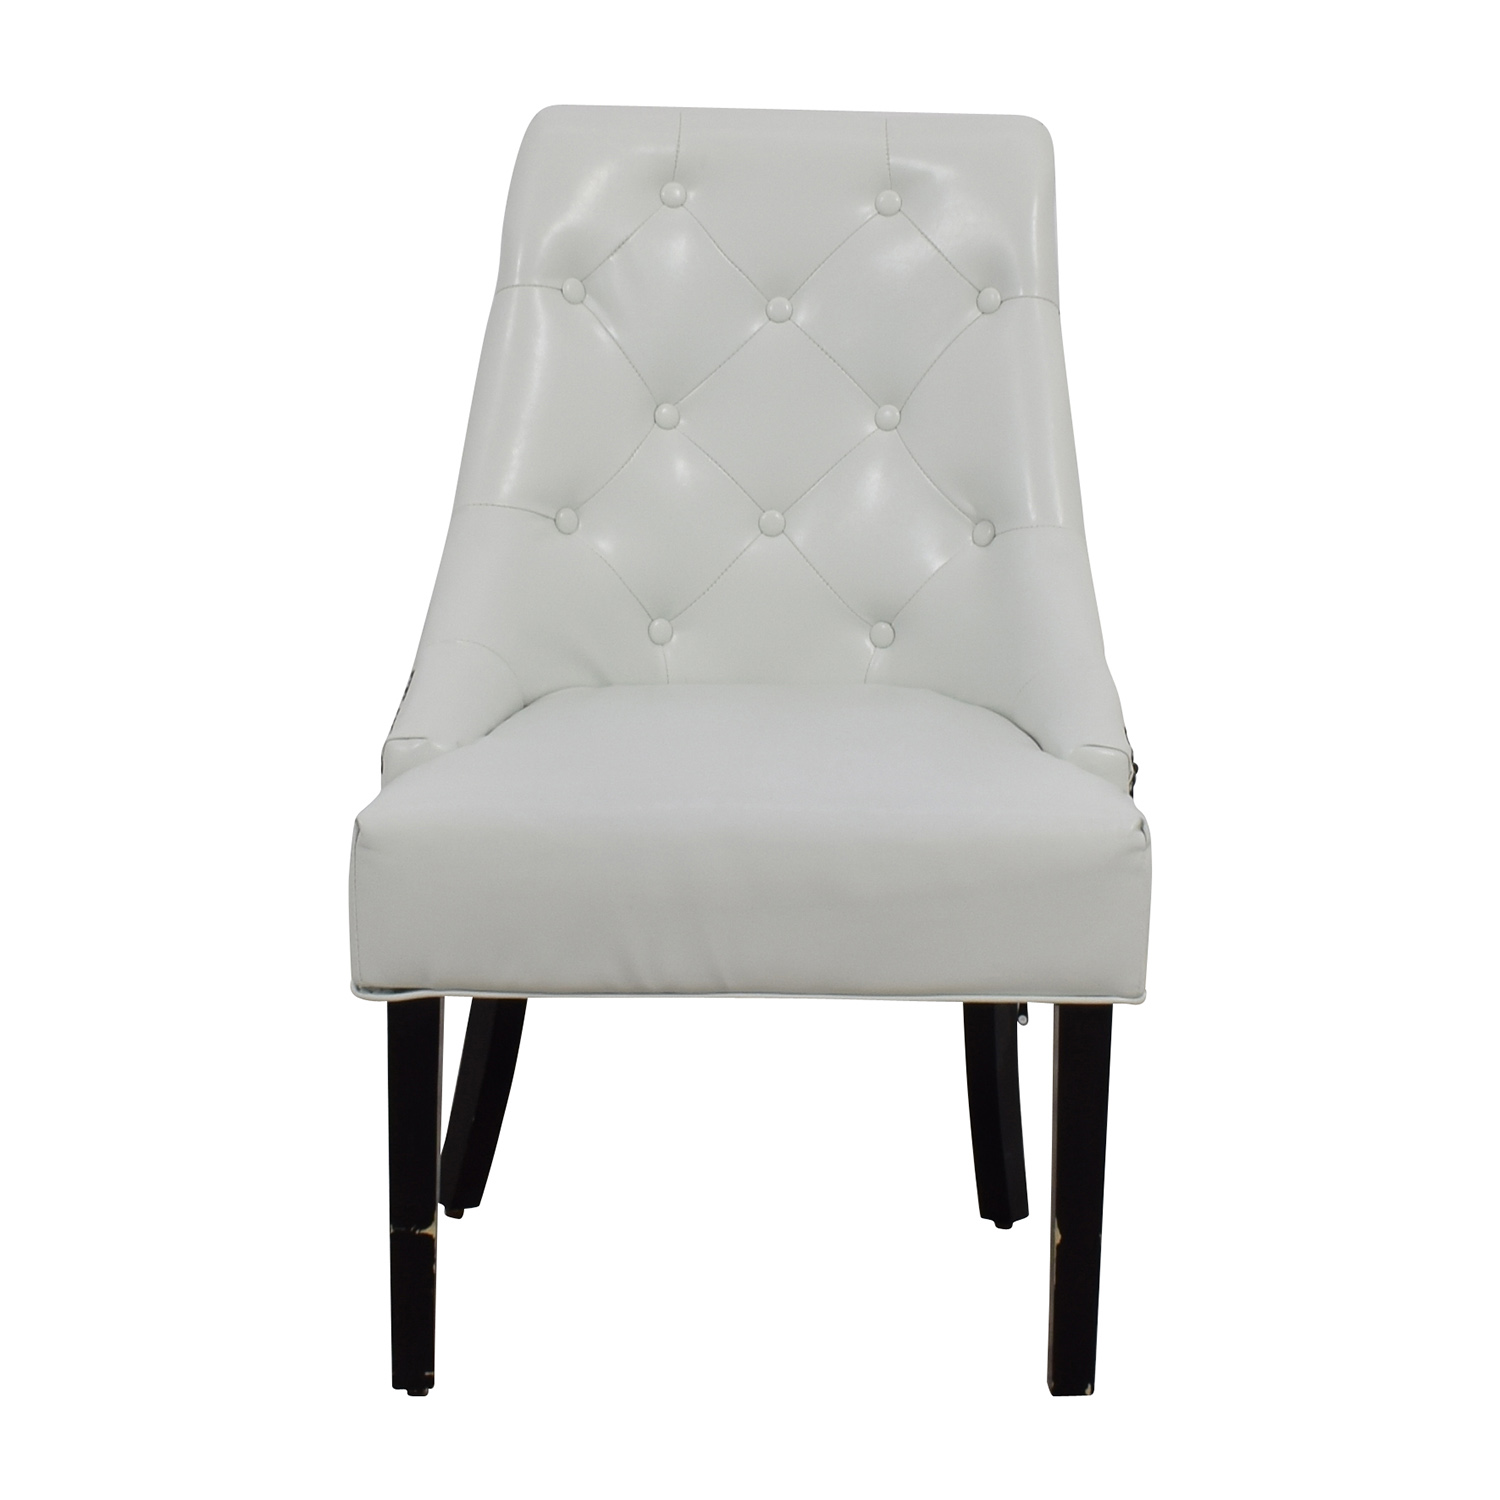 White Leather Accent Chair for sale